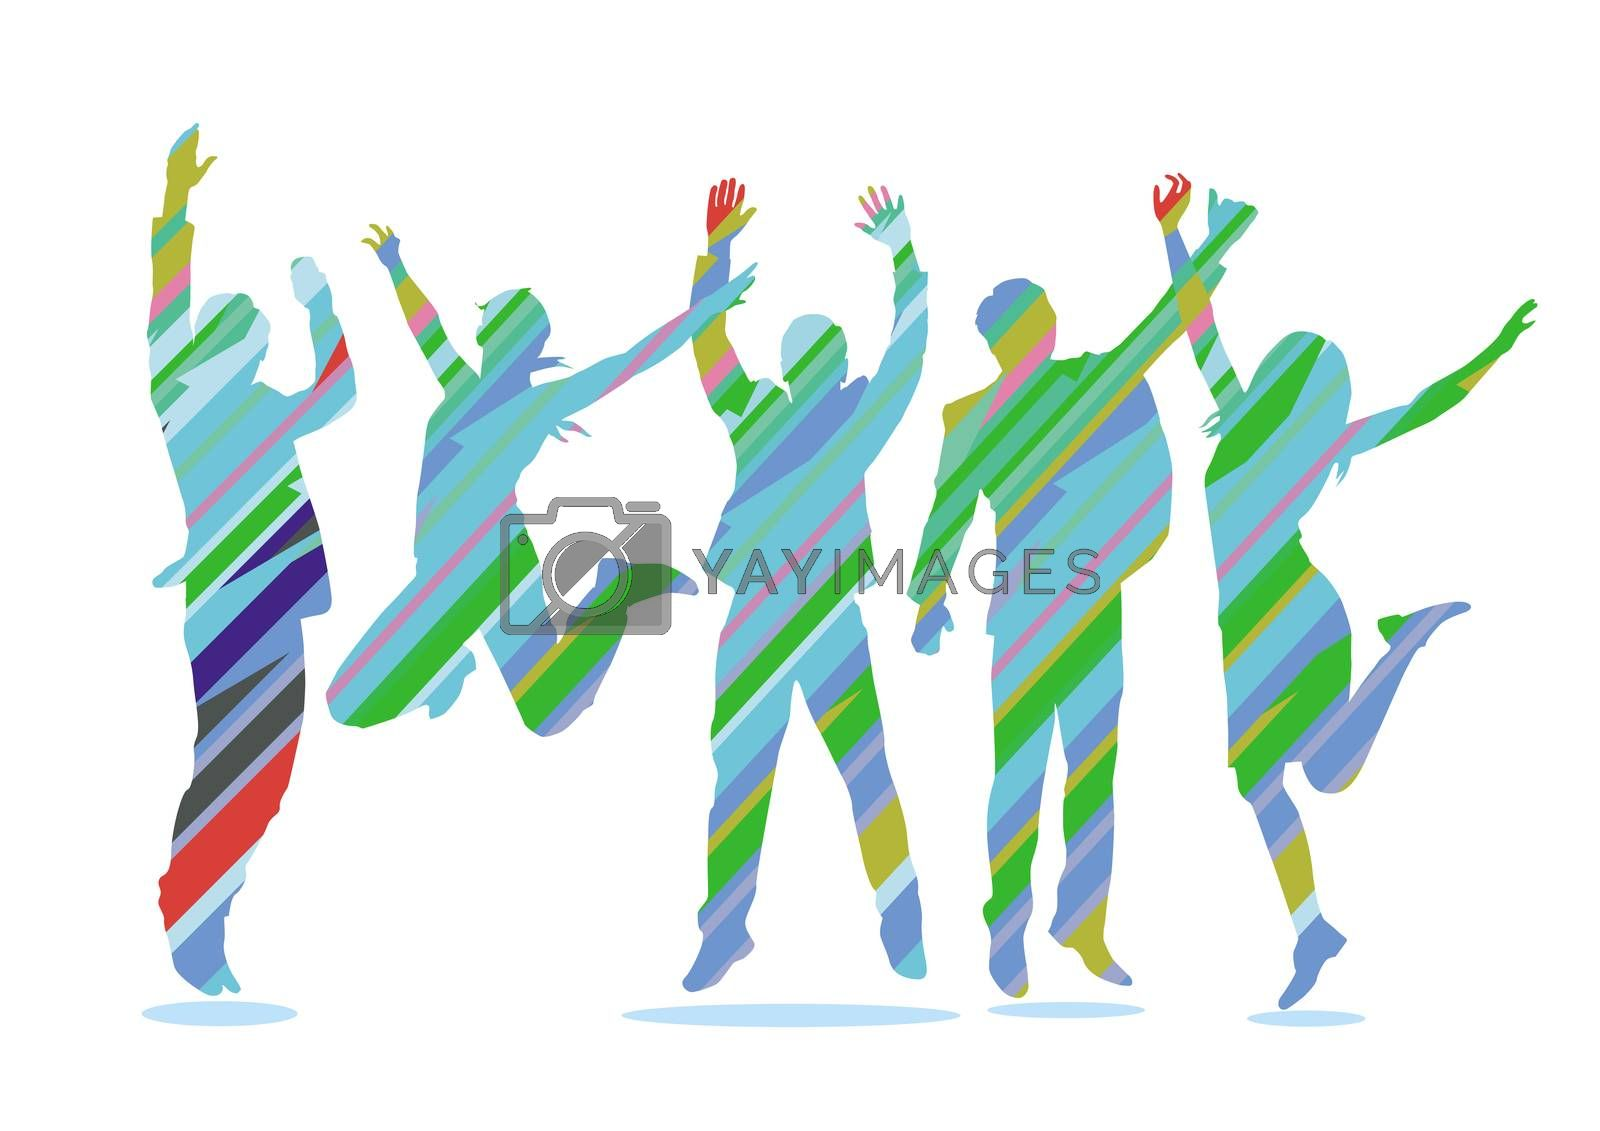 Royalty free image of group of business people celebrates - illustration by scusi